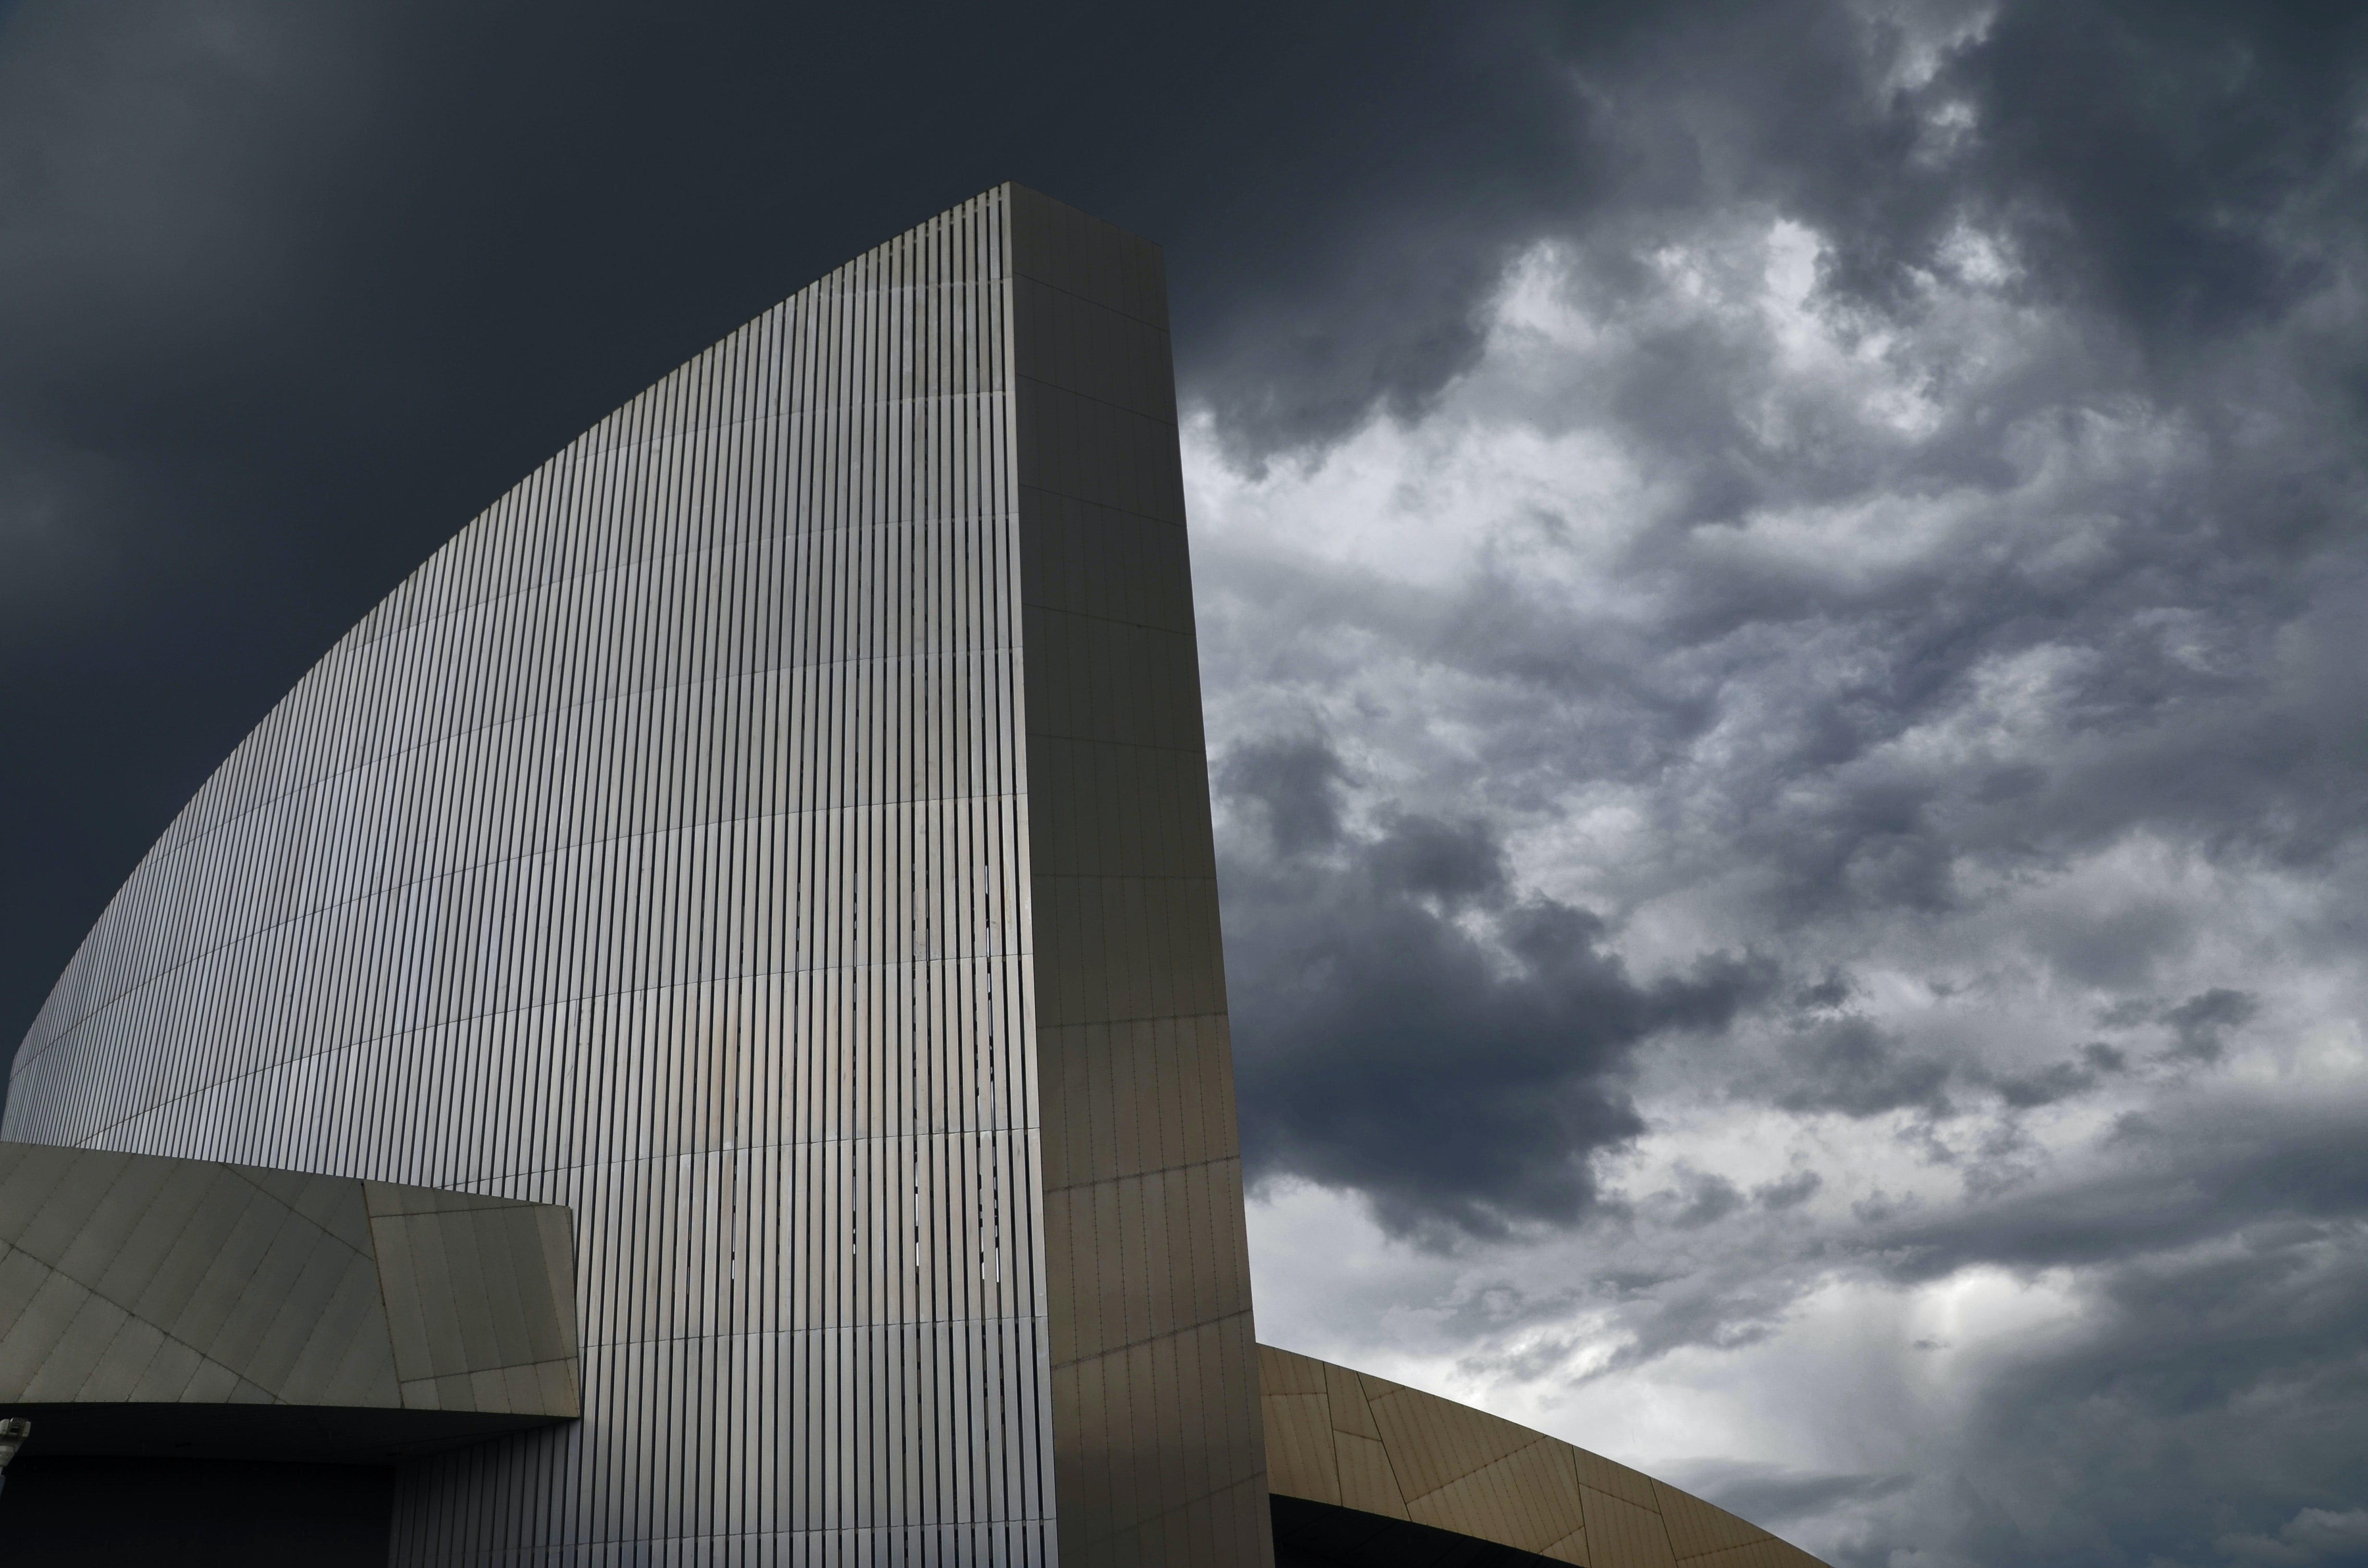 A postmodern building with cloudy skies in the background.